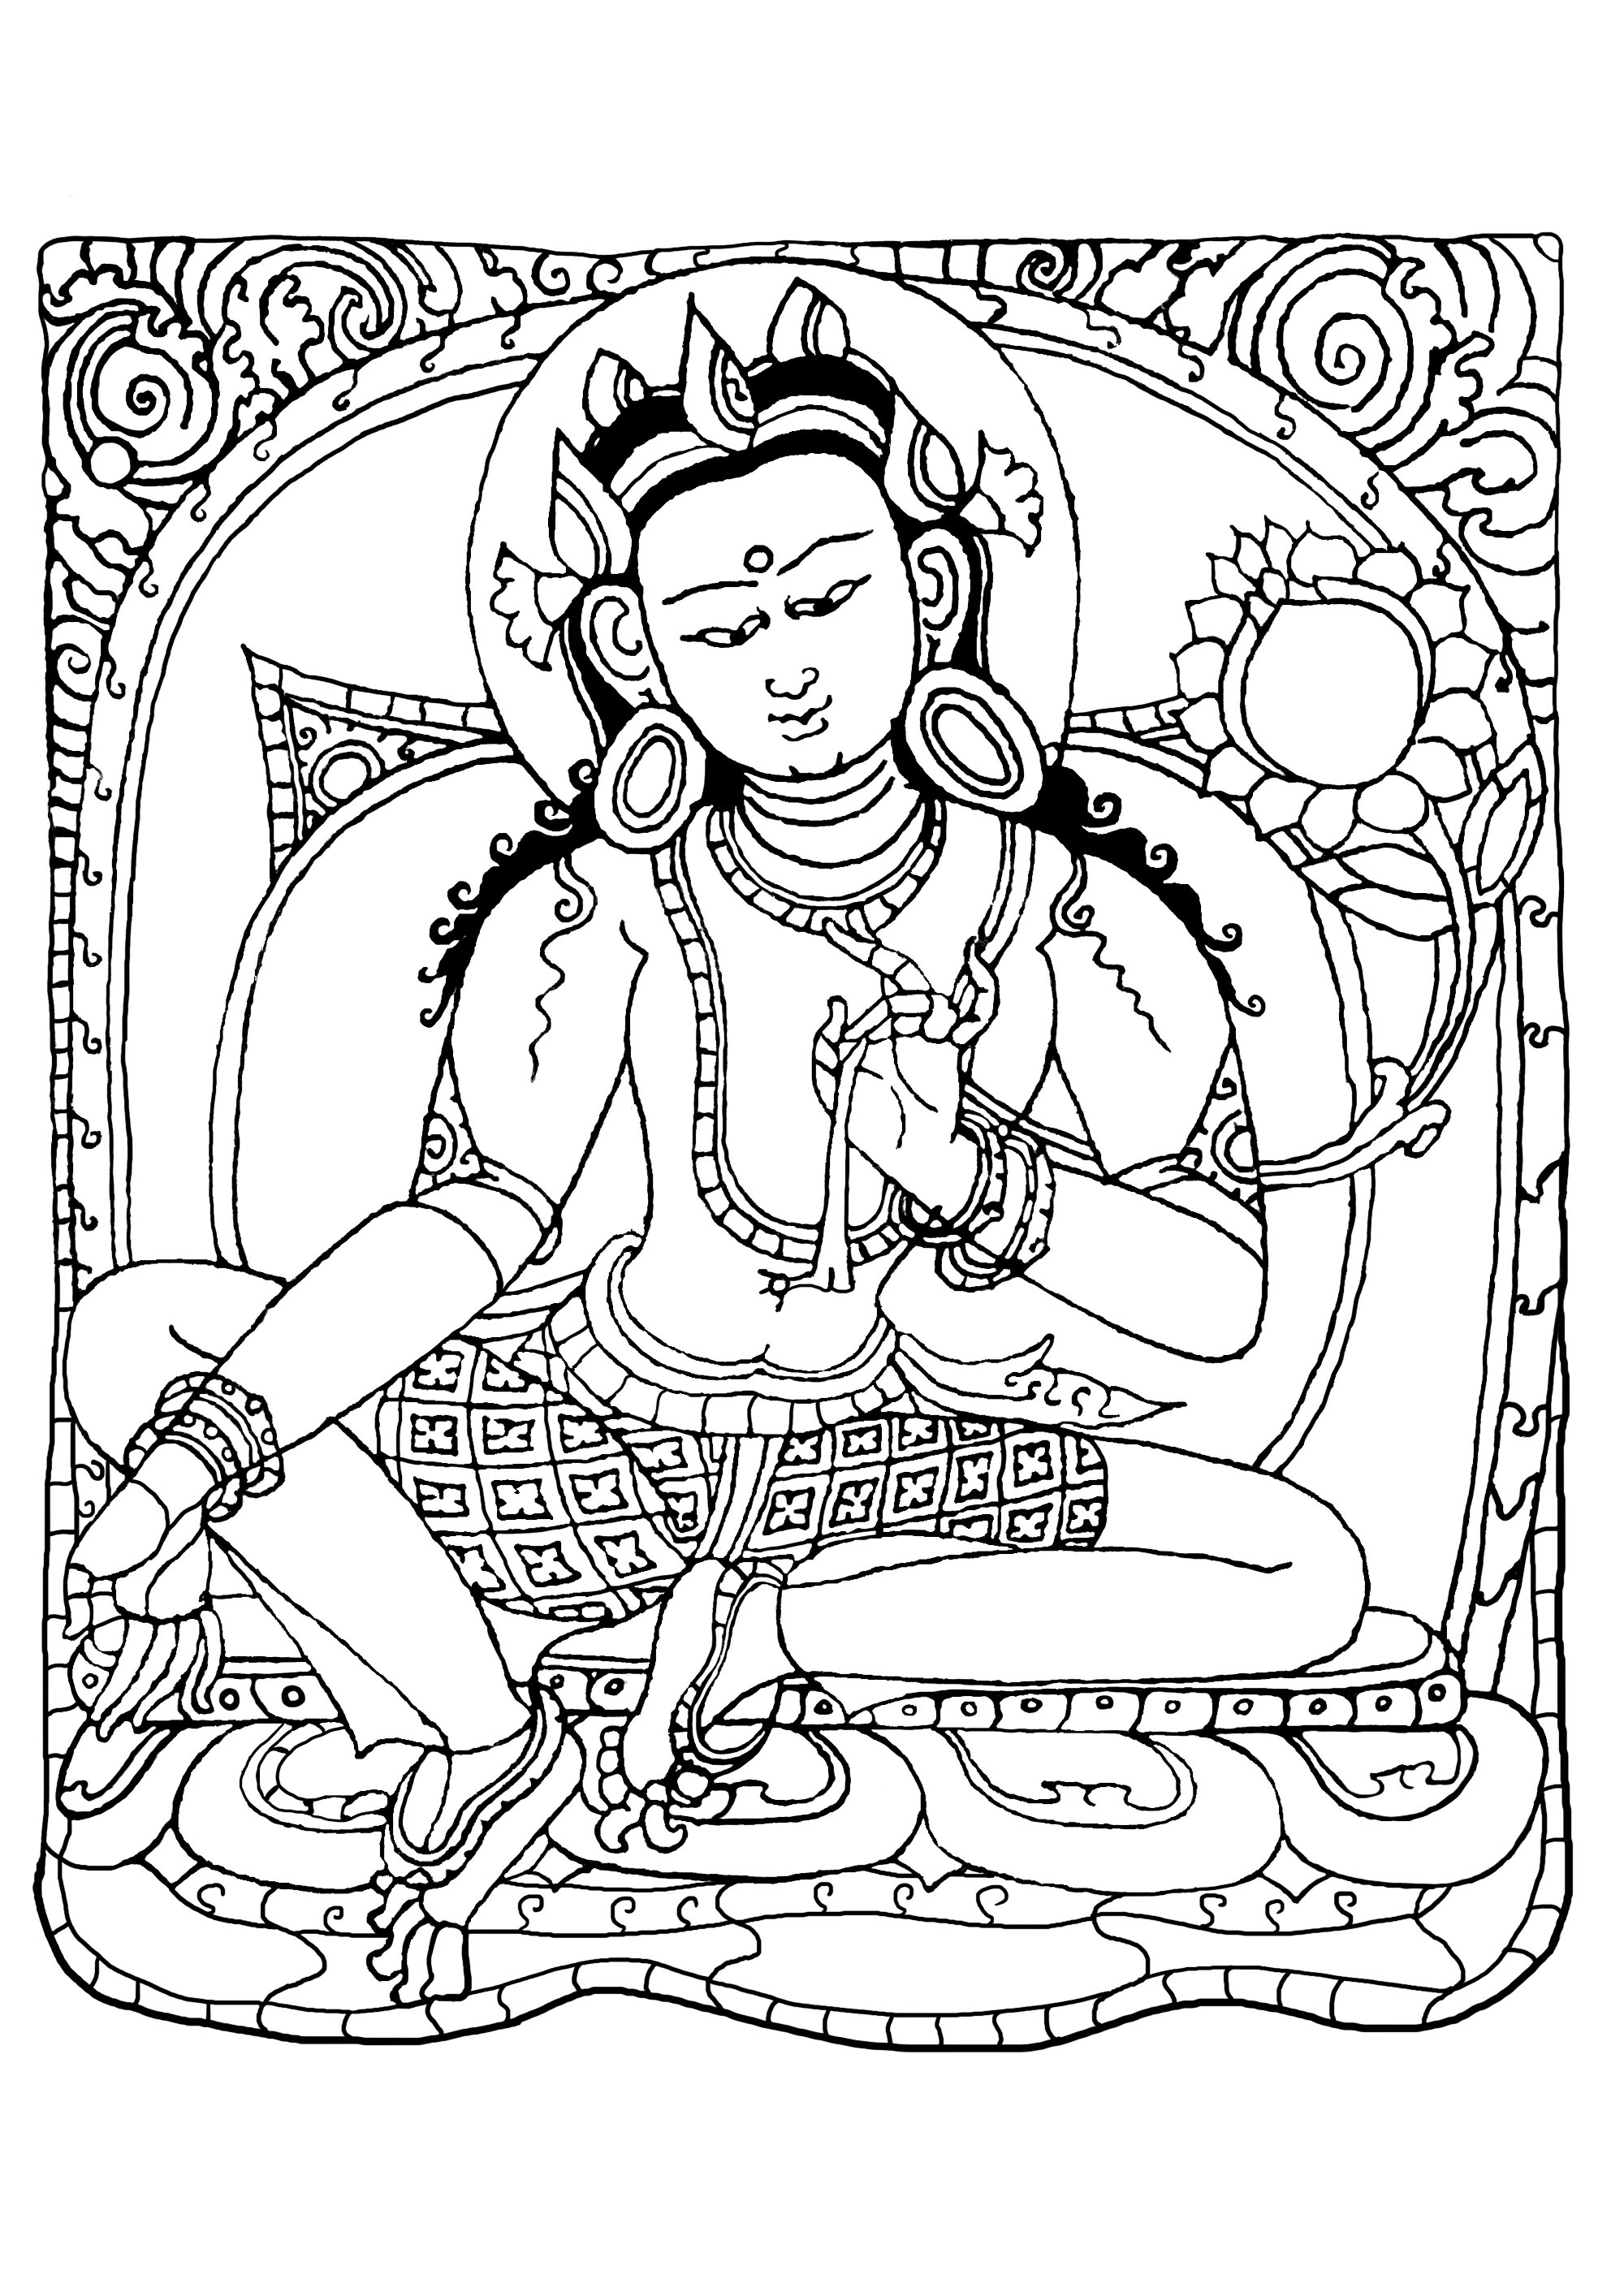 buddha coloring pages laughing buddha coloring page free printable coloring pages coloring buddha pages